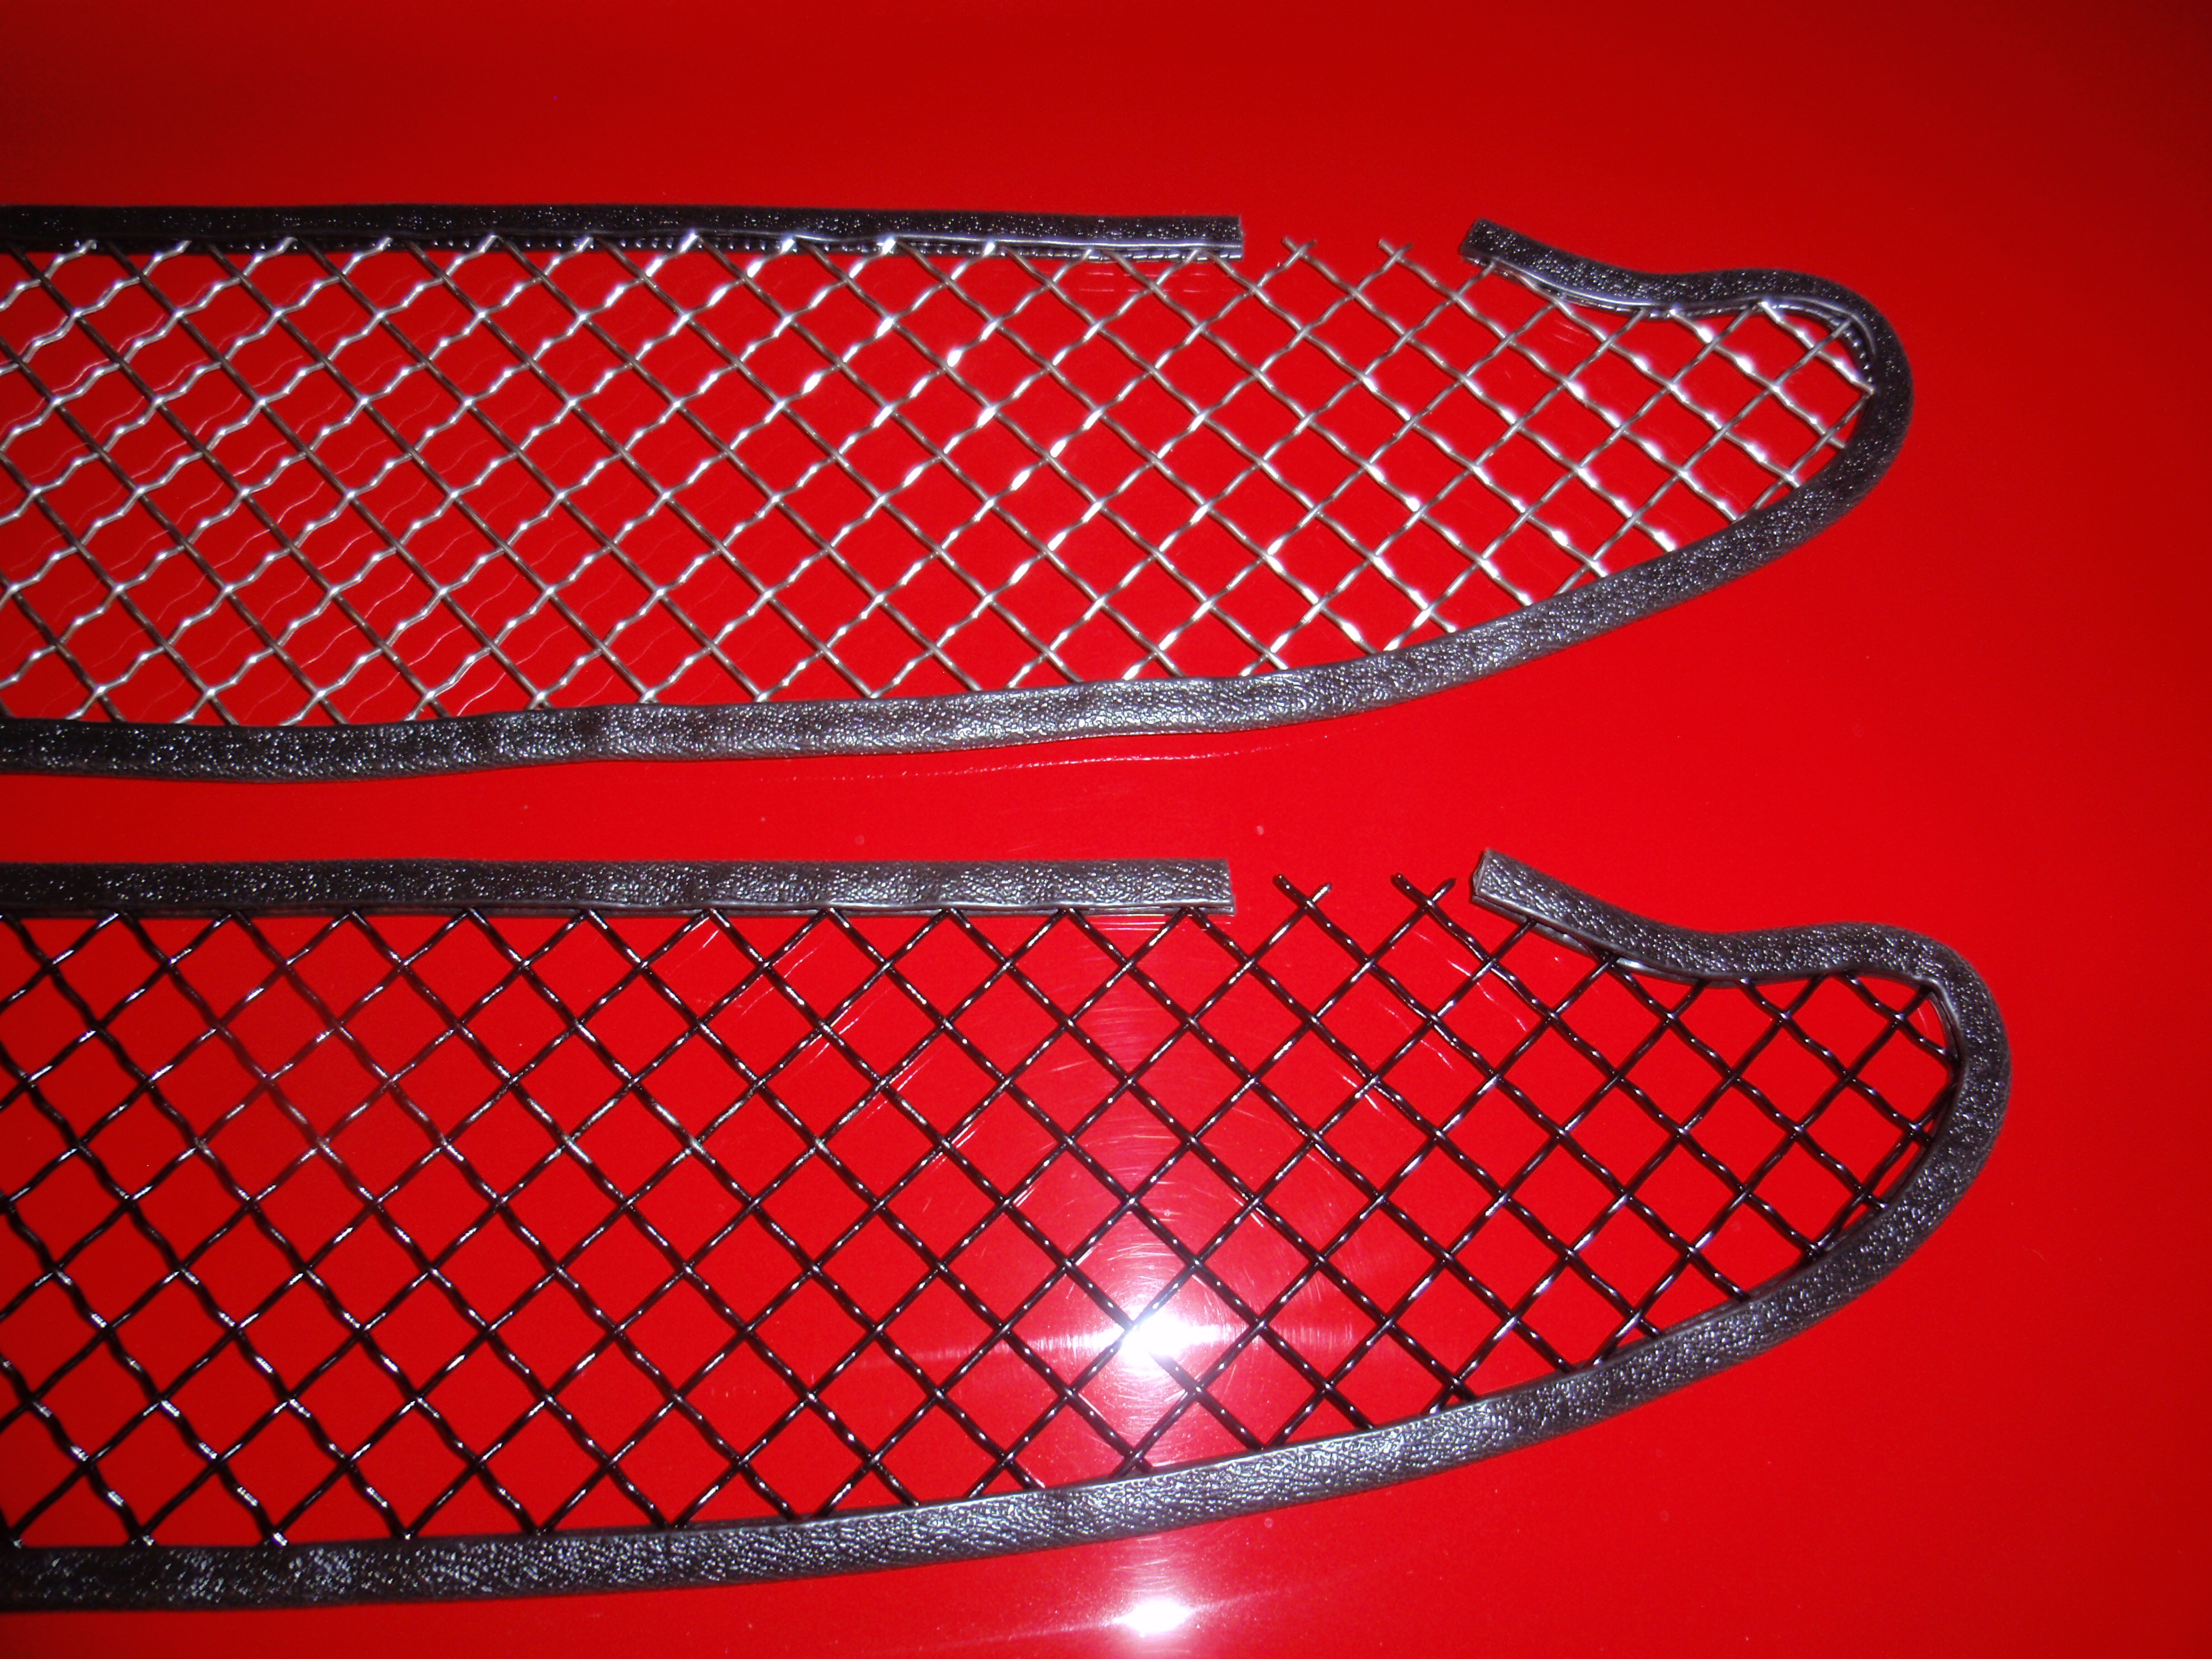 Clark inc stainless steel wire mesh grille